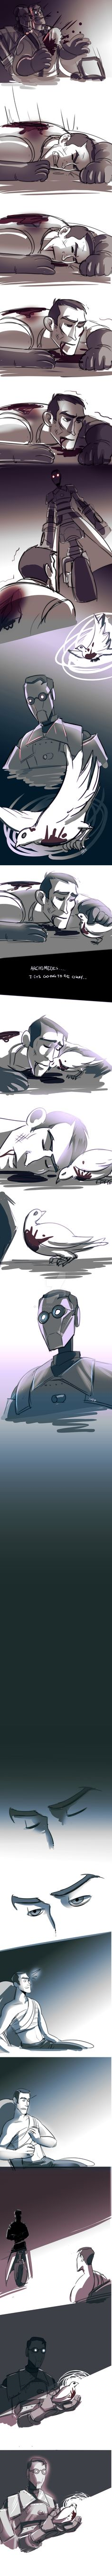 TF2: Dove by DarkLitria on DeviantArt